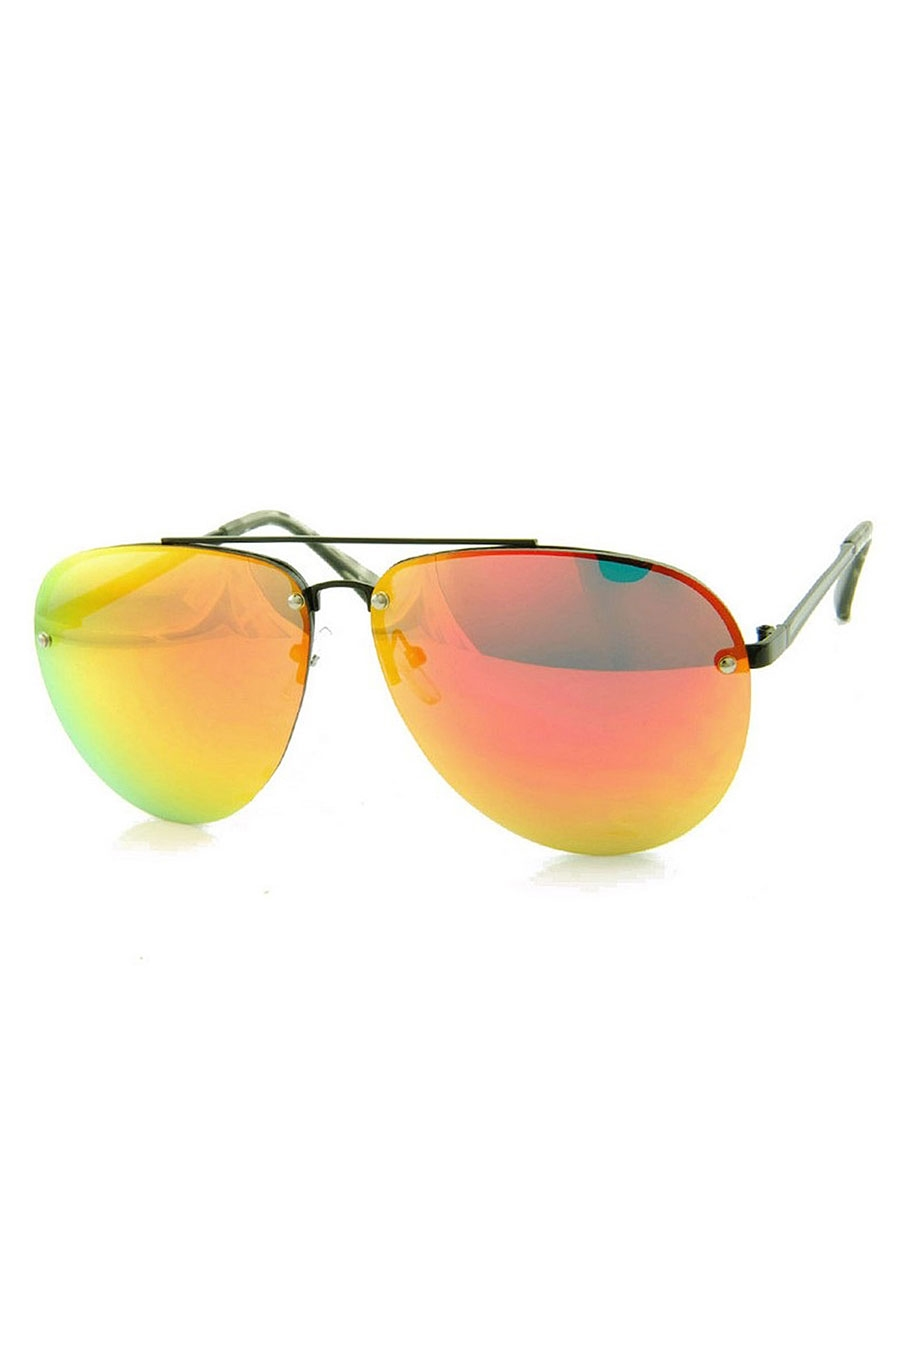 TINT MIRROR FASHION SUNGLASSES - orangeshine.com